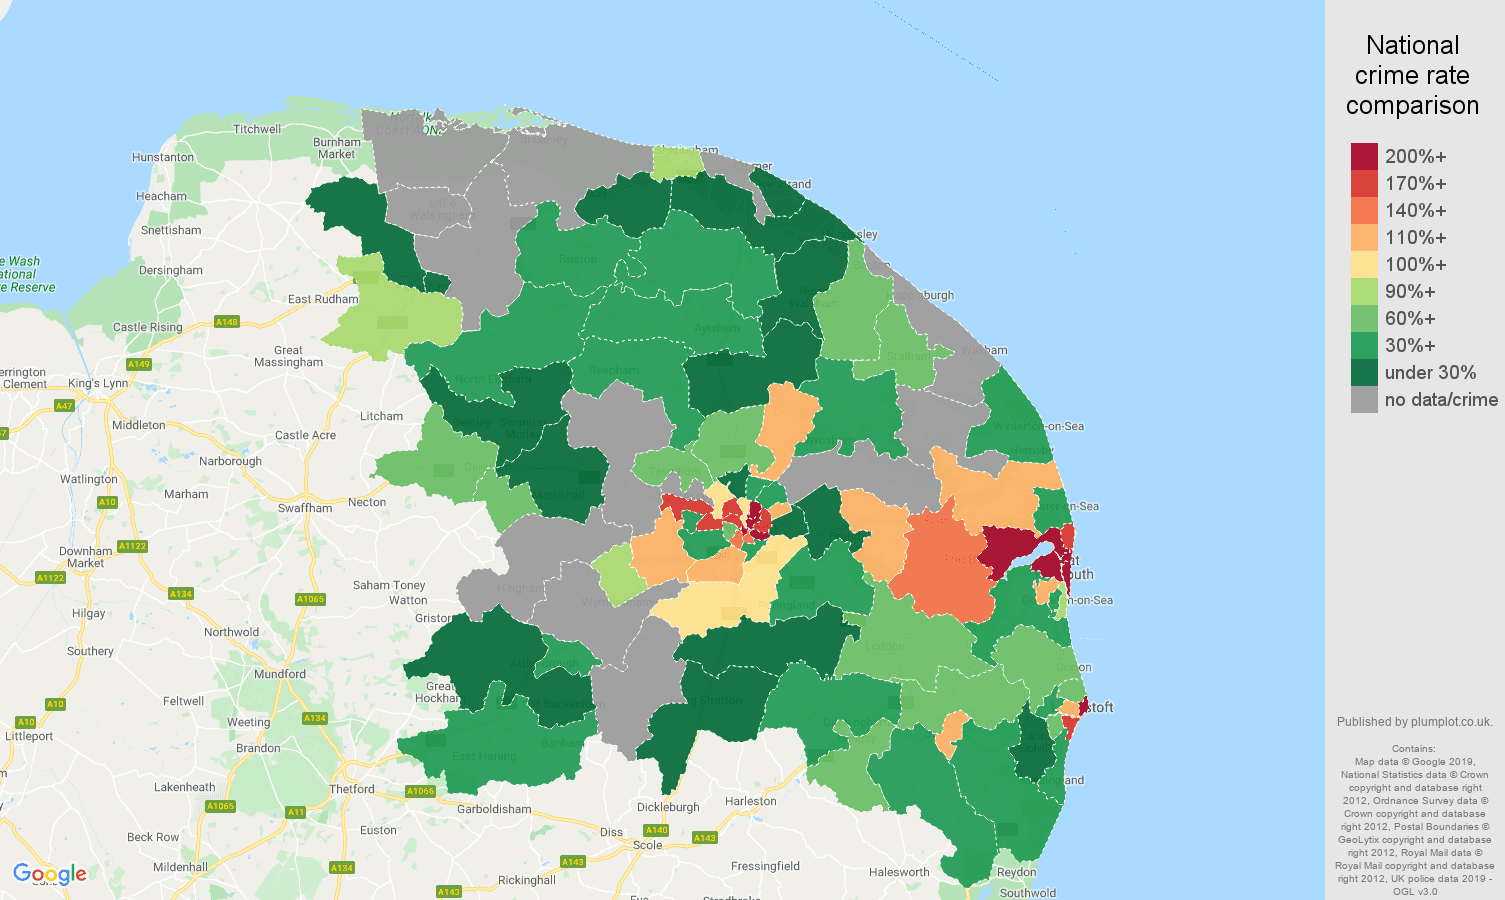 Norwich possession of weapons crime rate comparison map